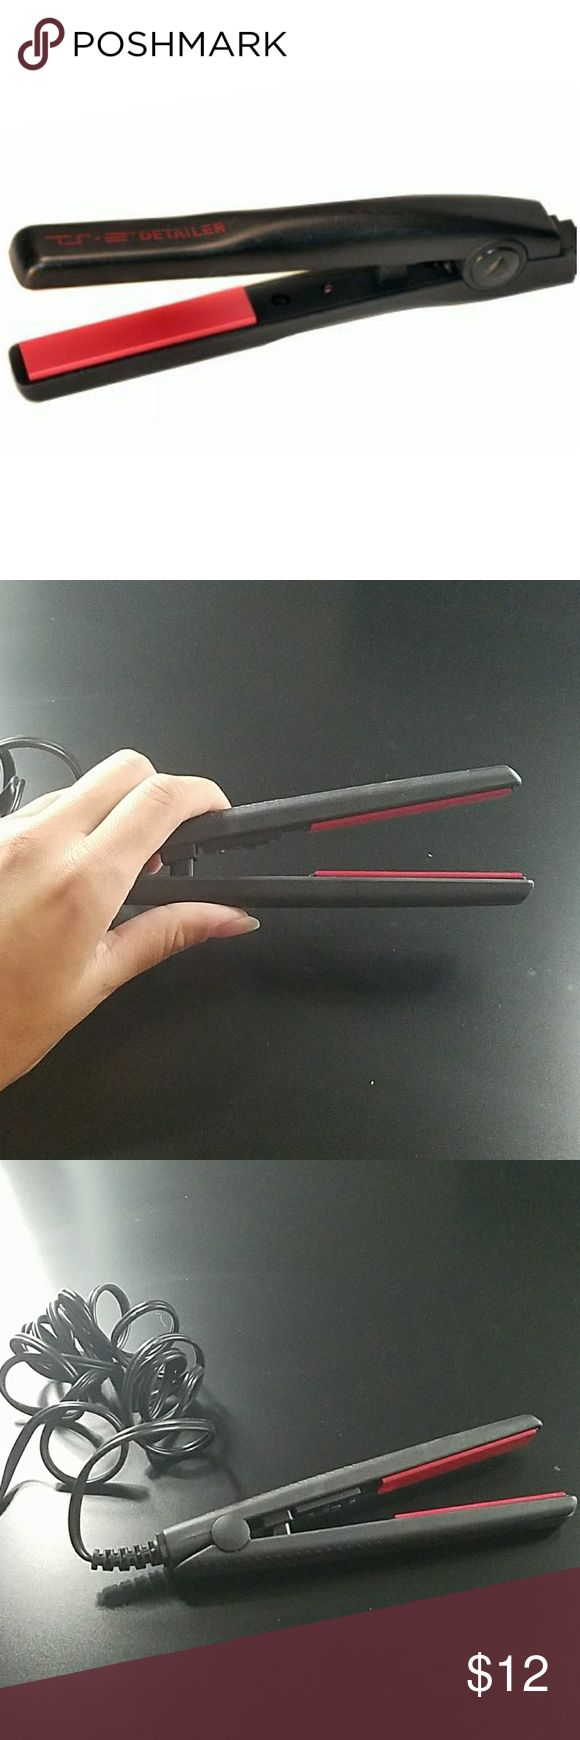 Mini hair straightener Great for on the go, in the purse, or traveling. Never used but does not have box. Other